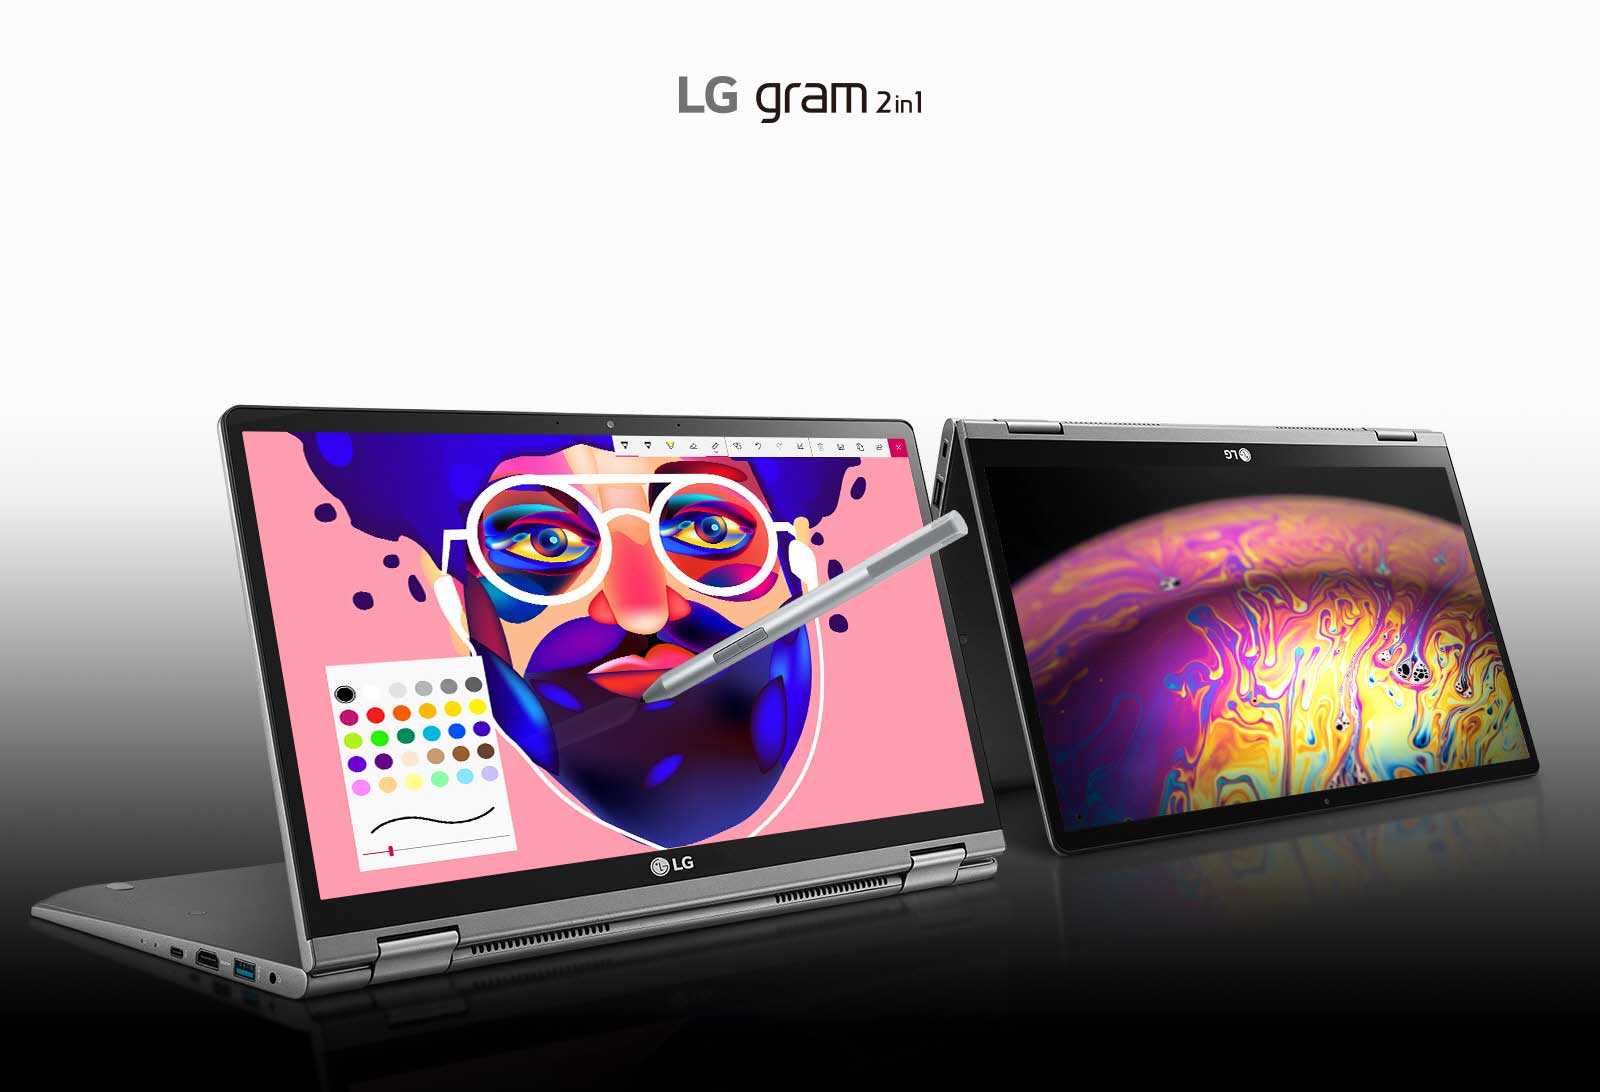 Image of two grams, one with pen and with colorful graphics on the screen